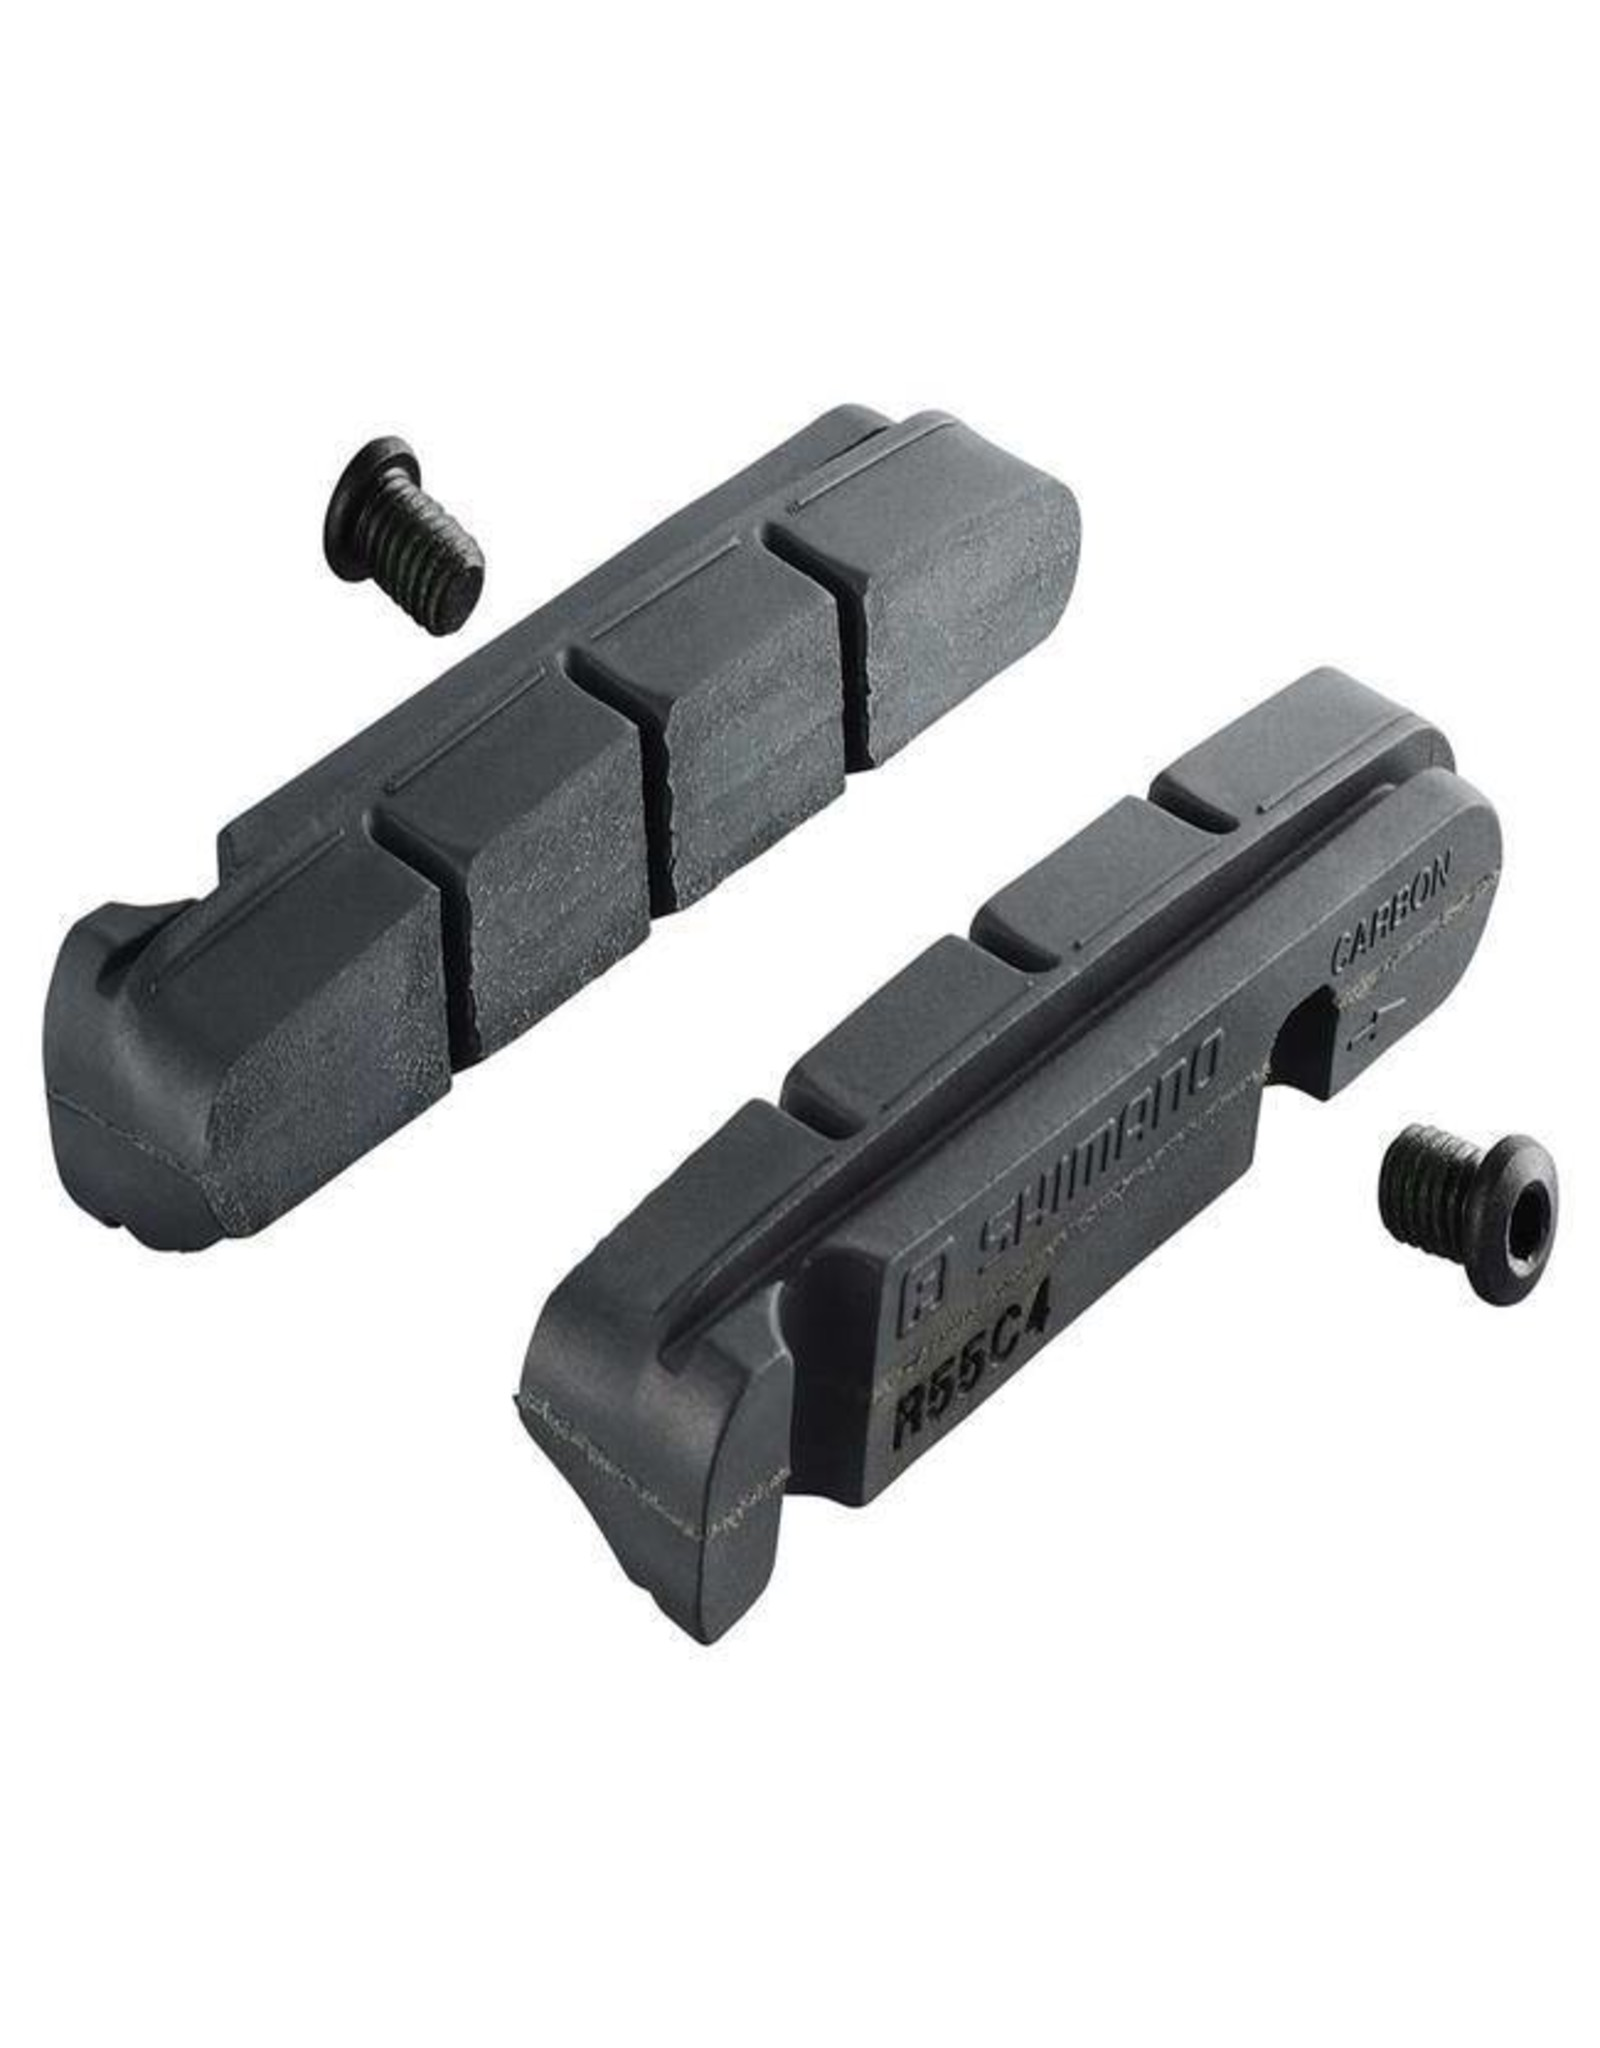 SHIMANO Bulk Shimano R55C4 Cartridge Inserts Road Pads - Single Pair